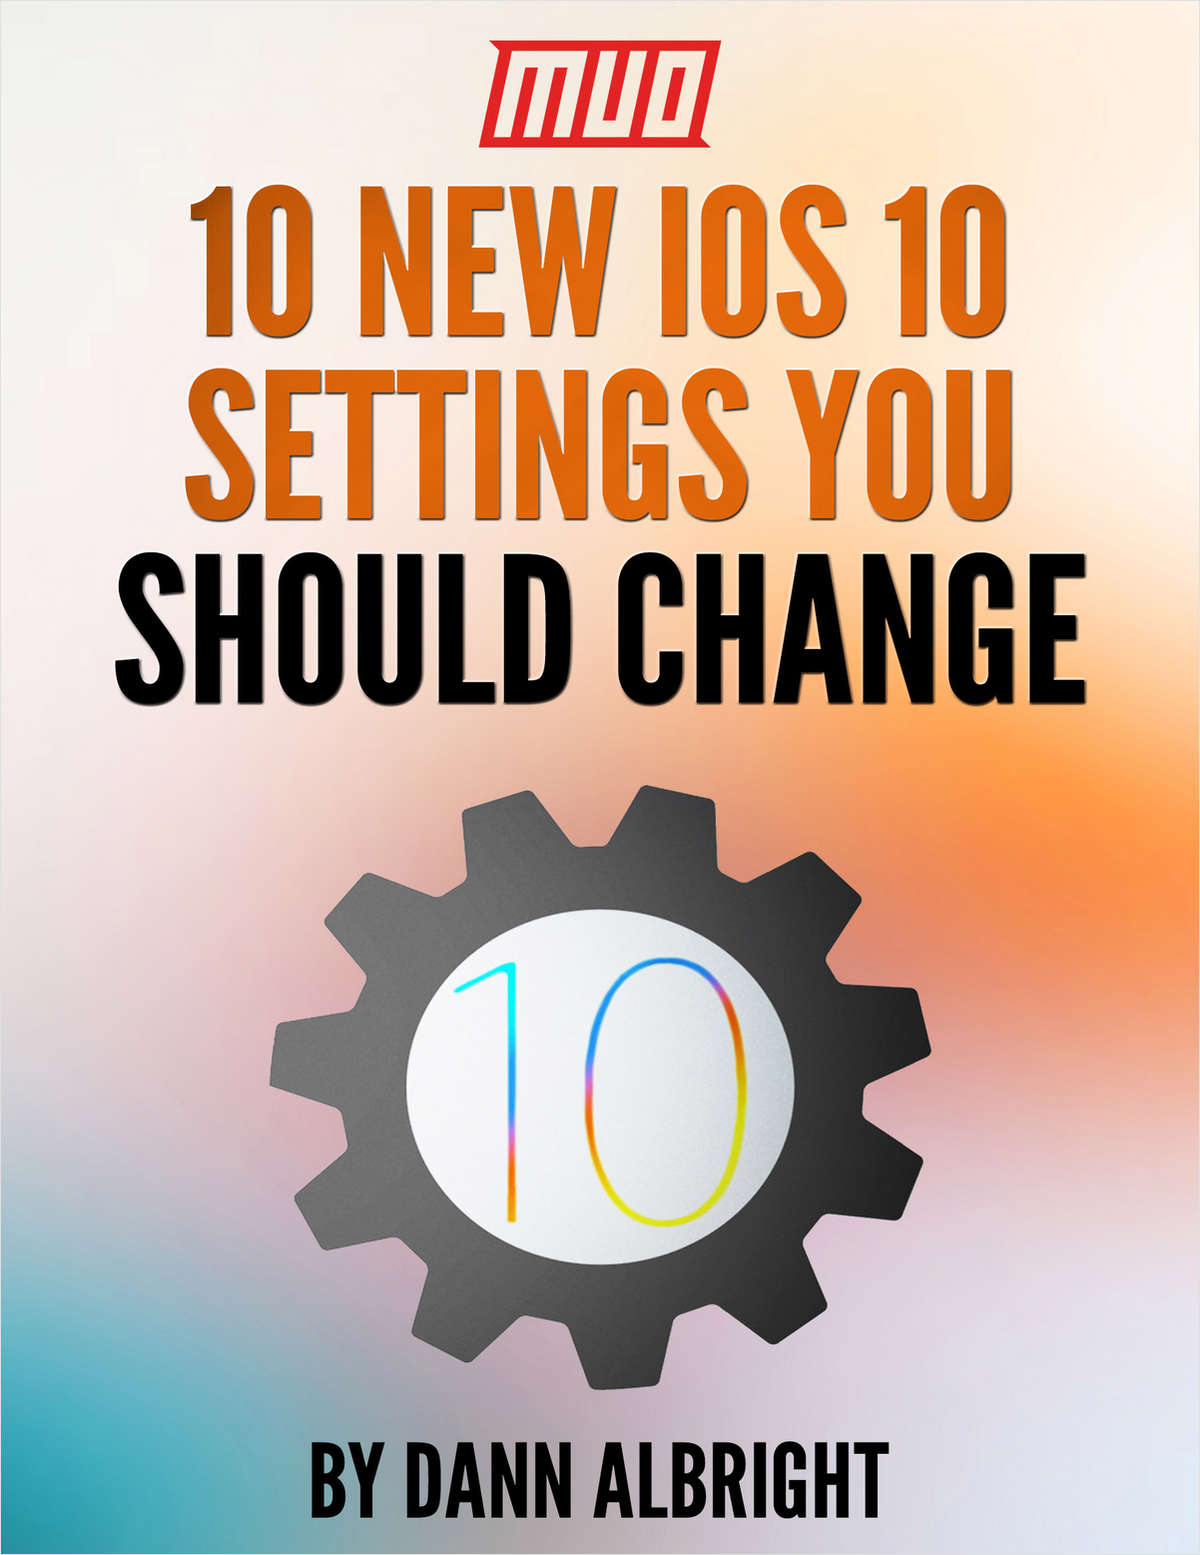 10 New iOS 10 Settings You Should Change